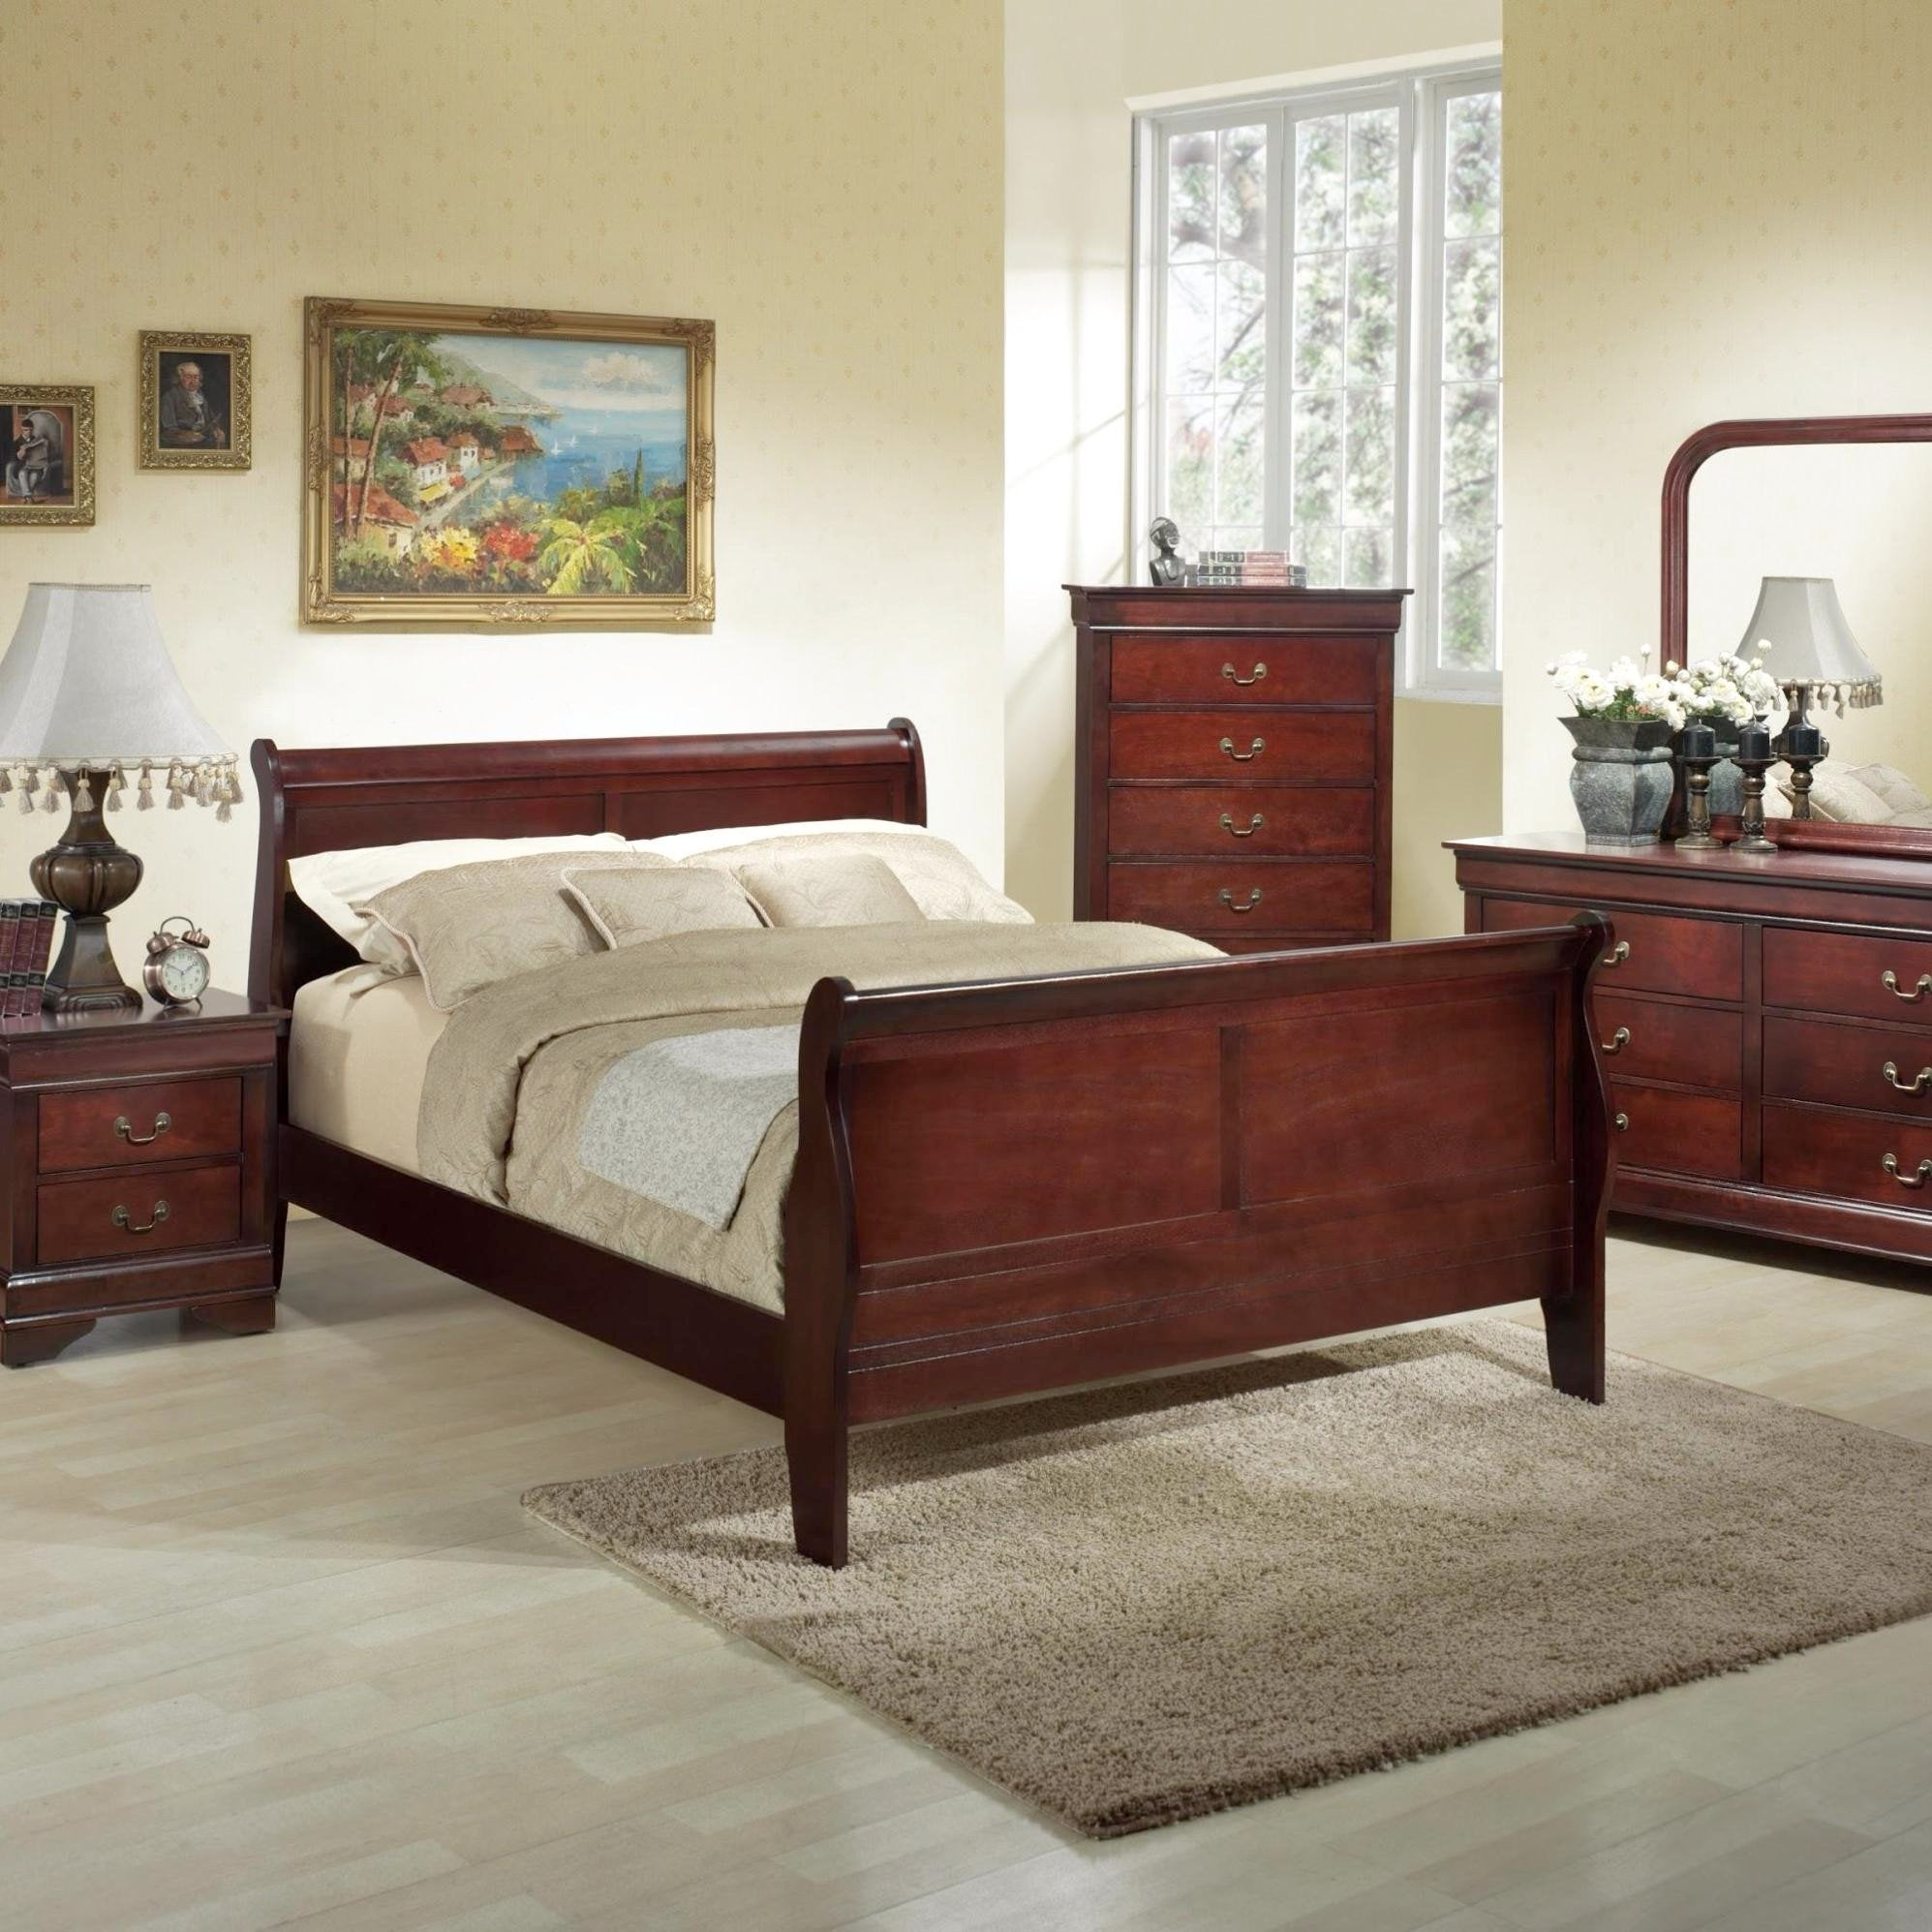 louis philippe bedroom furniture louis philippe bedroom set furniture 15928